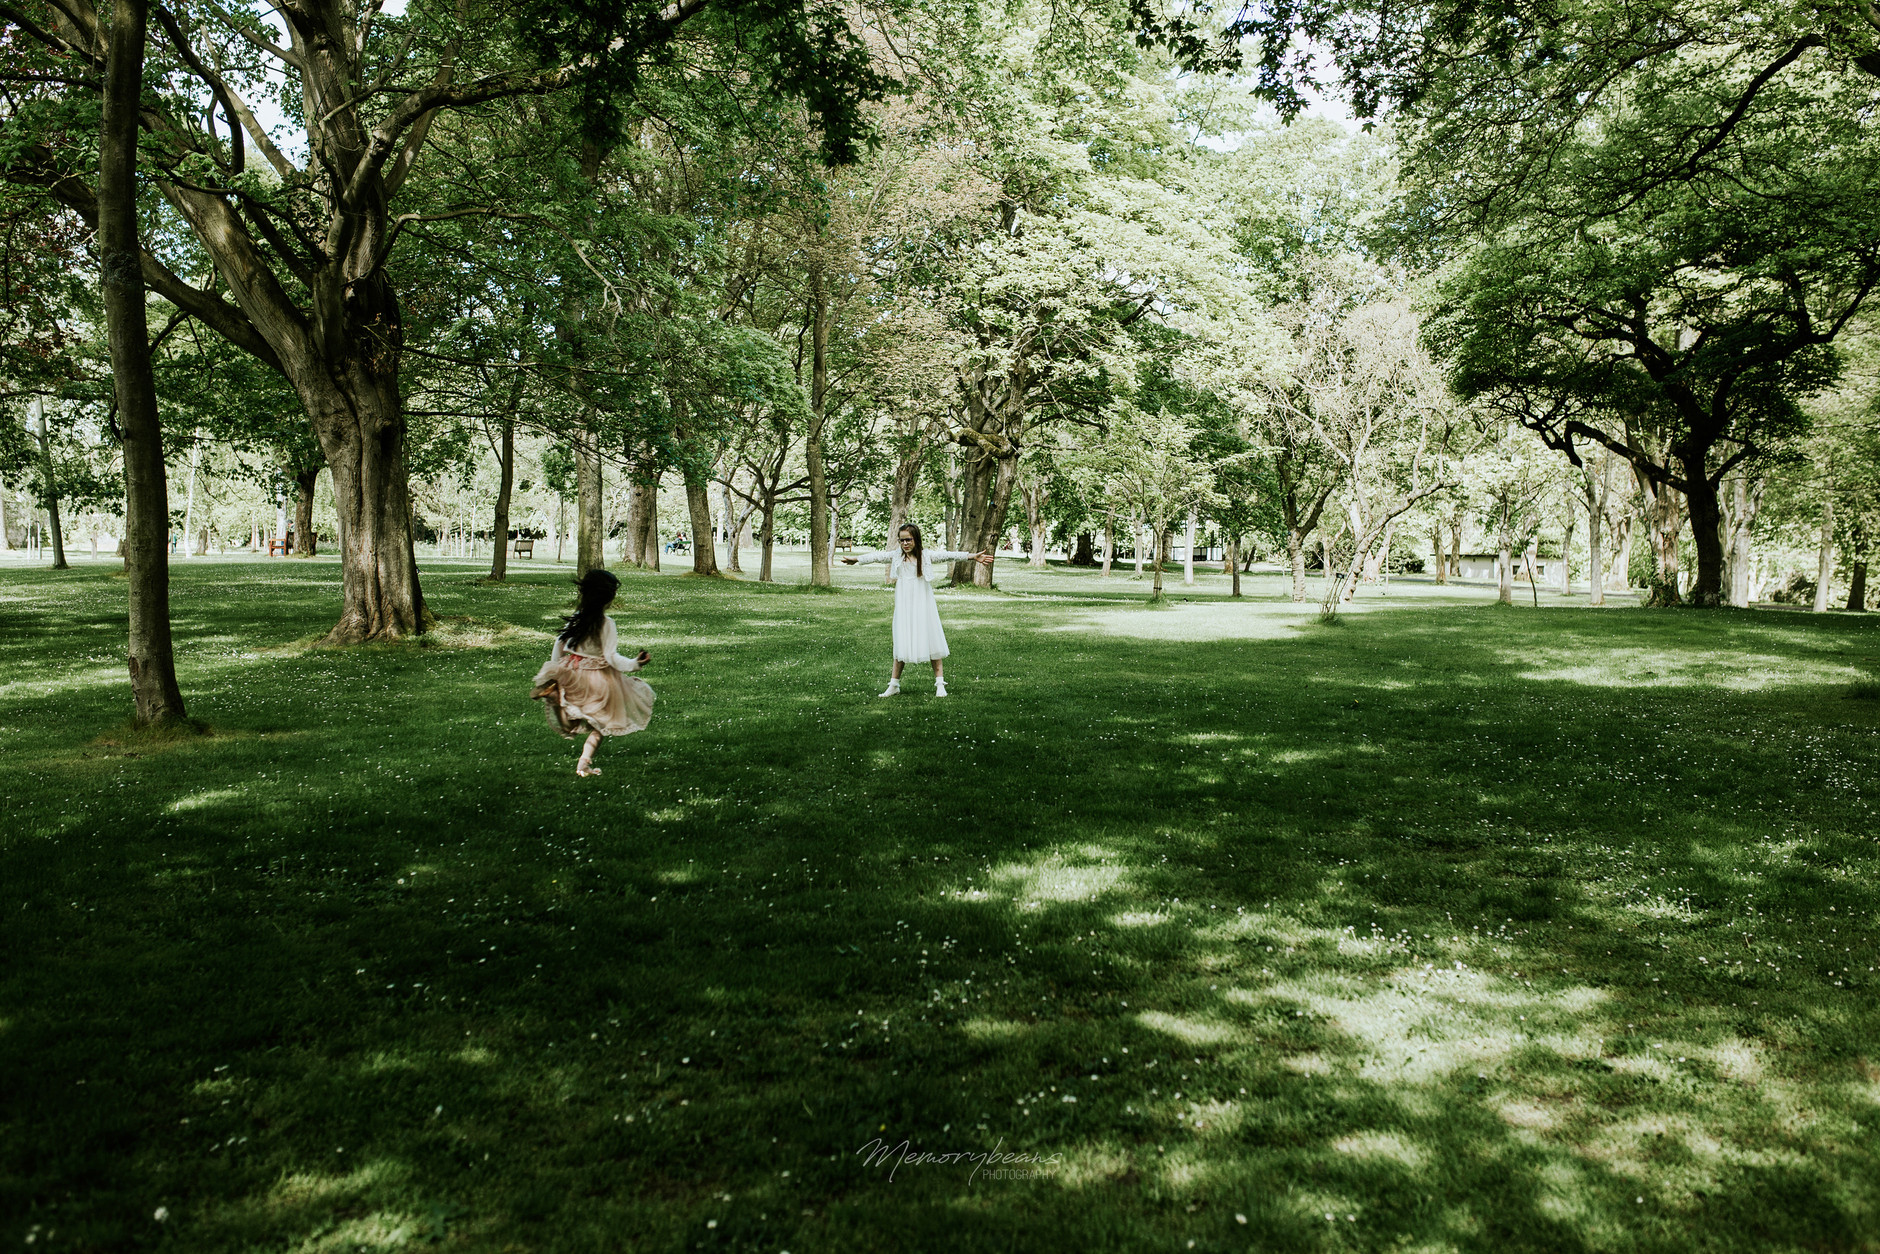 Sisters running and having fun after first holy communion ceremony